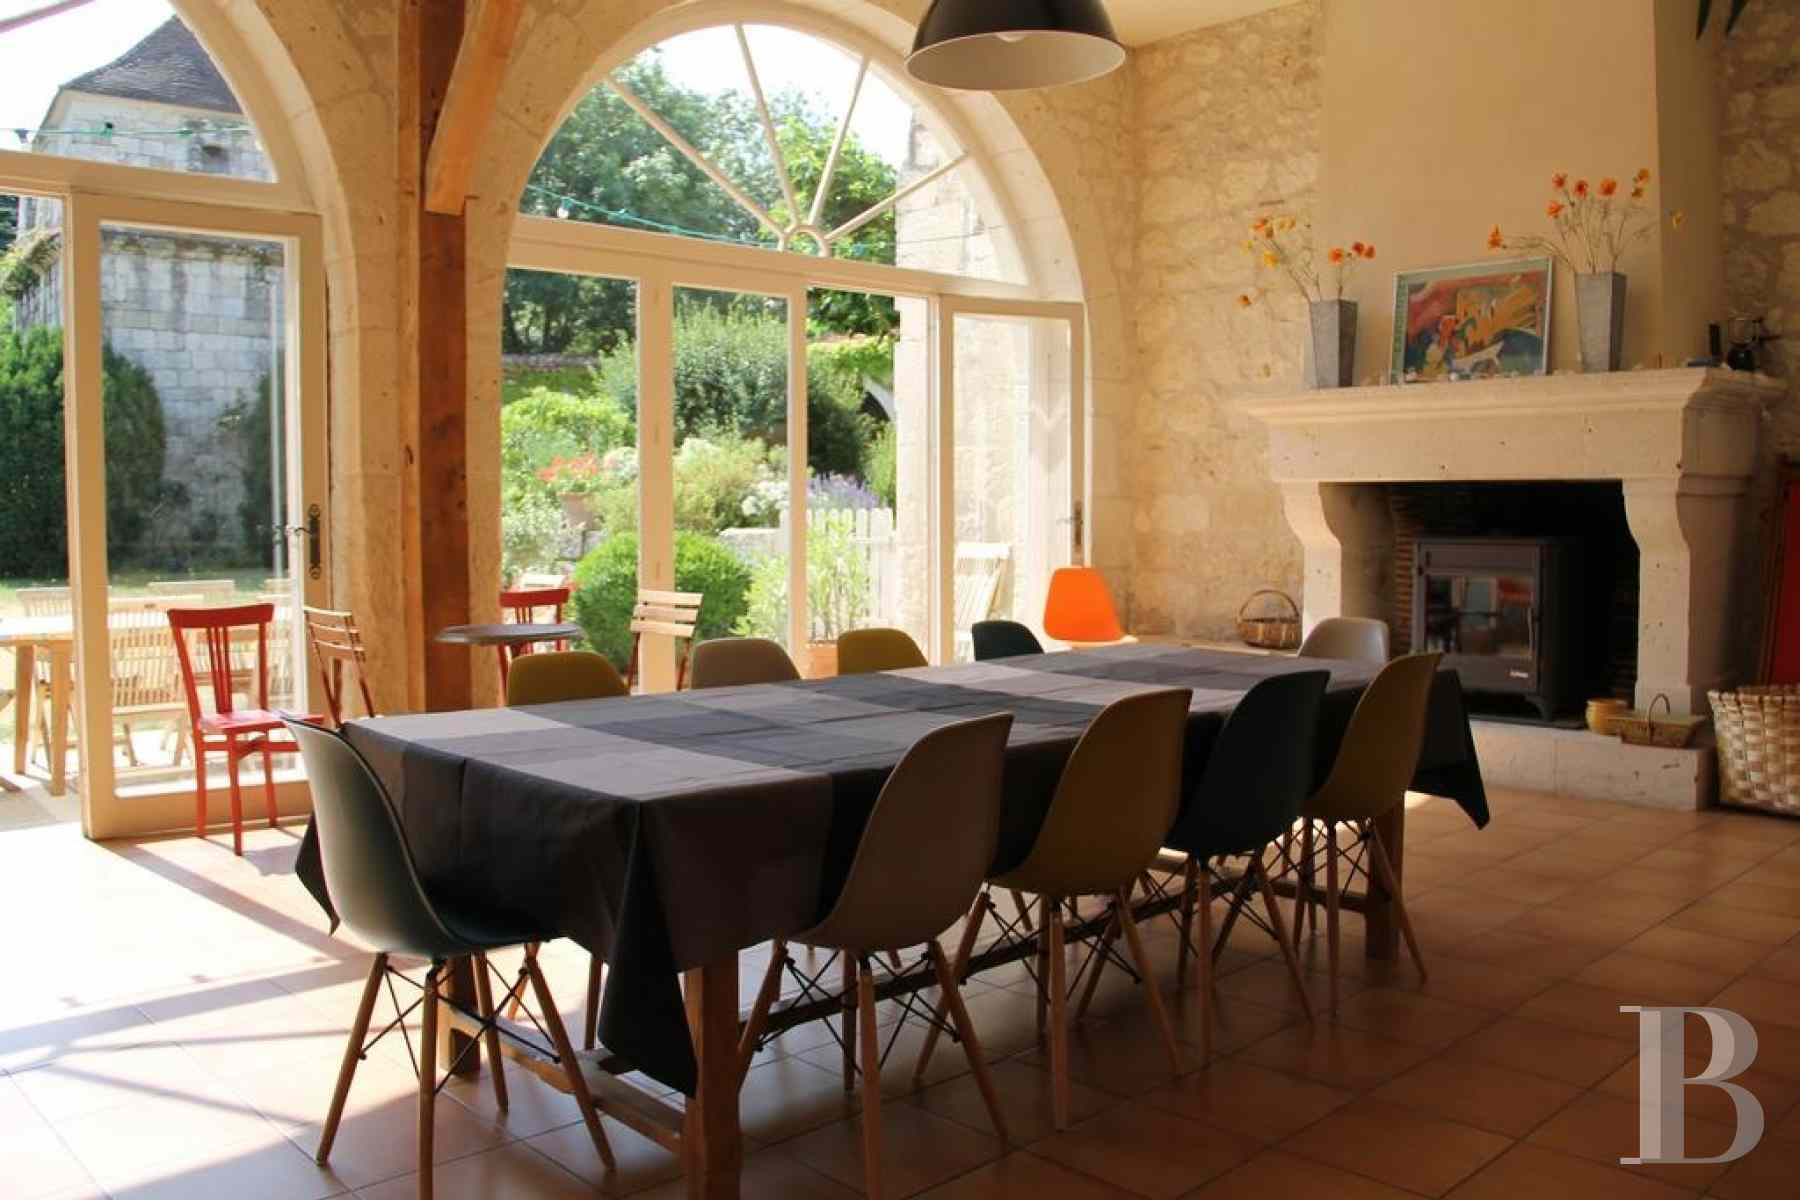 property for sale France aquitaine property 18th - 9 zoom